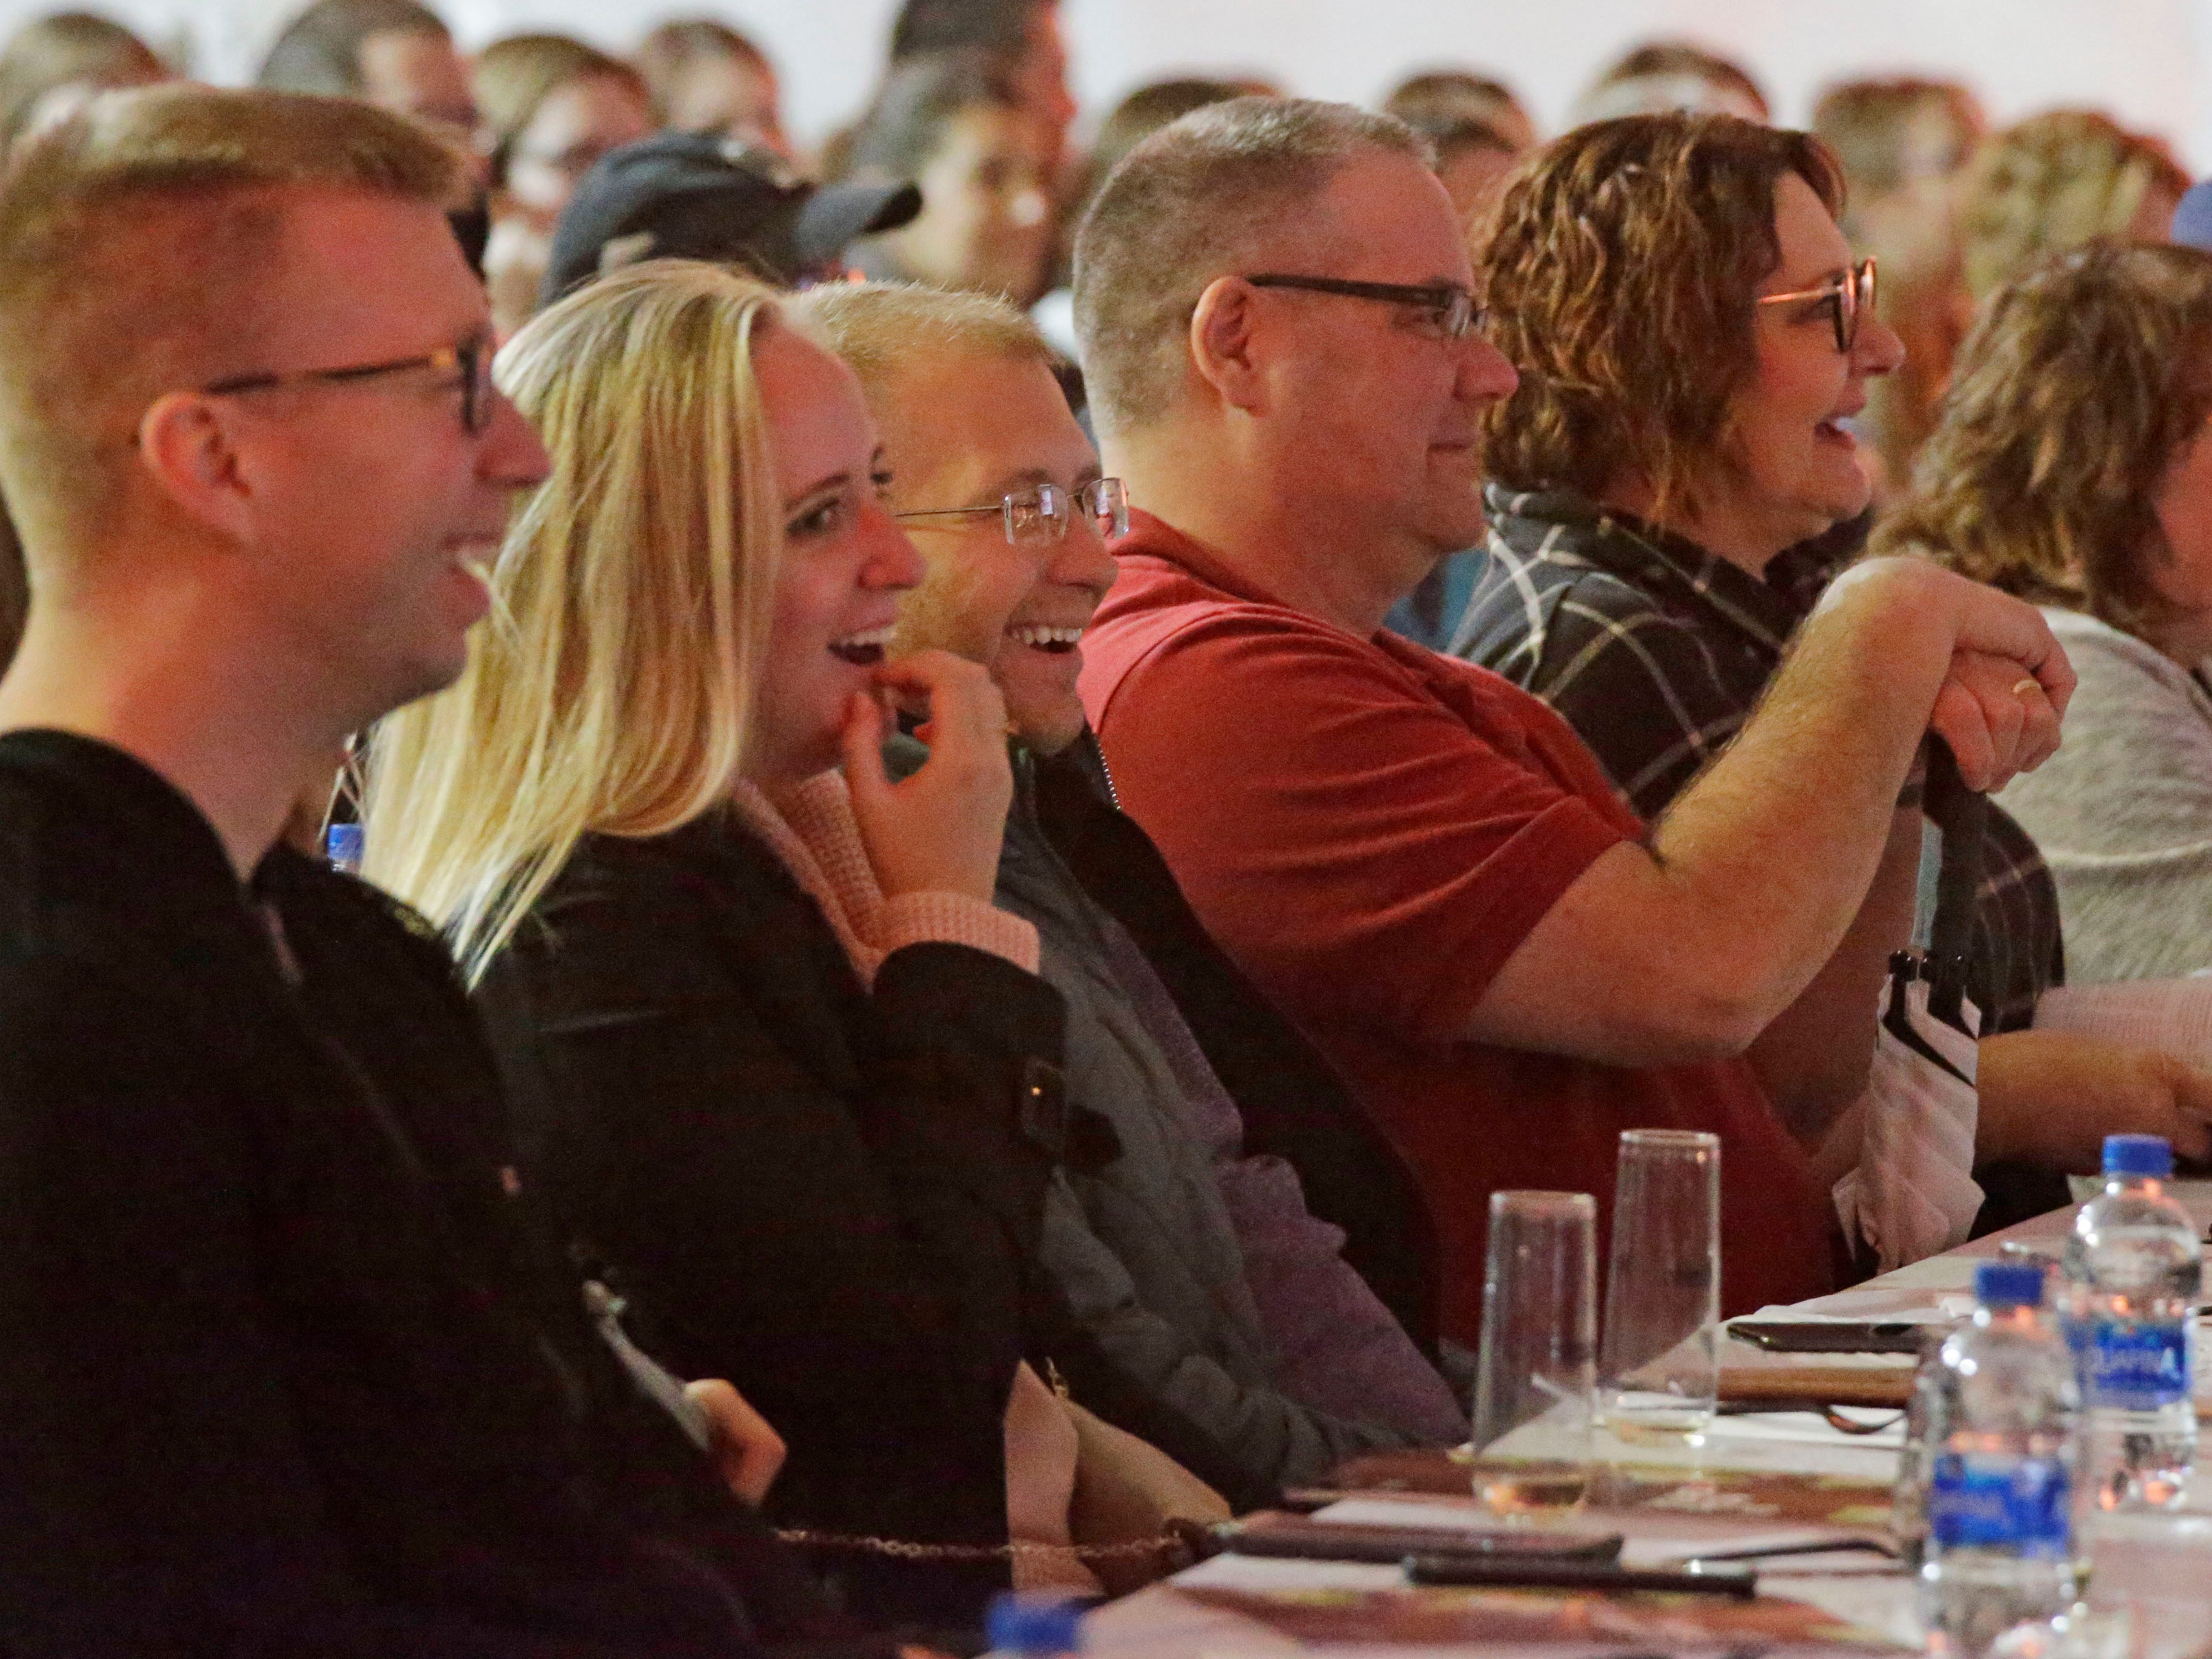 People smile during celebrity chef Fabio Viviani's presentation at Kohler Food and Wine, Saturday, October 20, 2018, in Kohler, Wis.